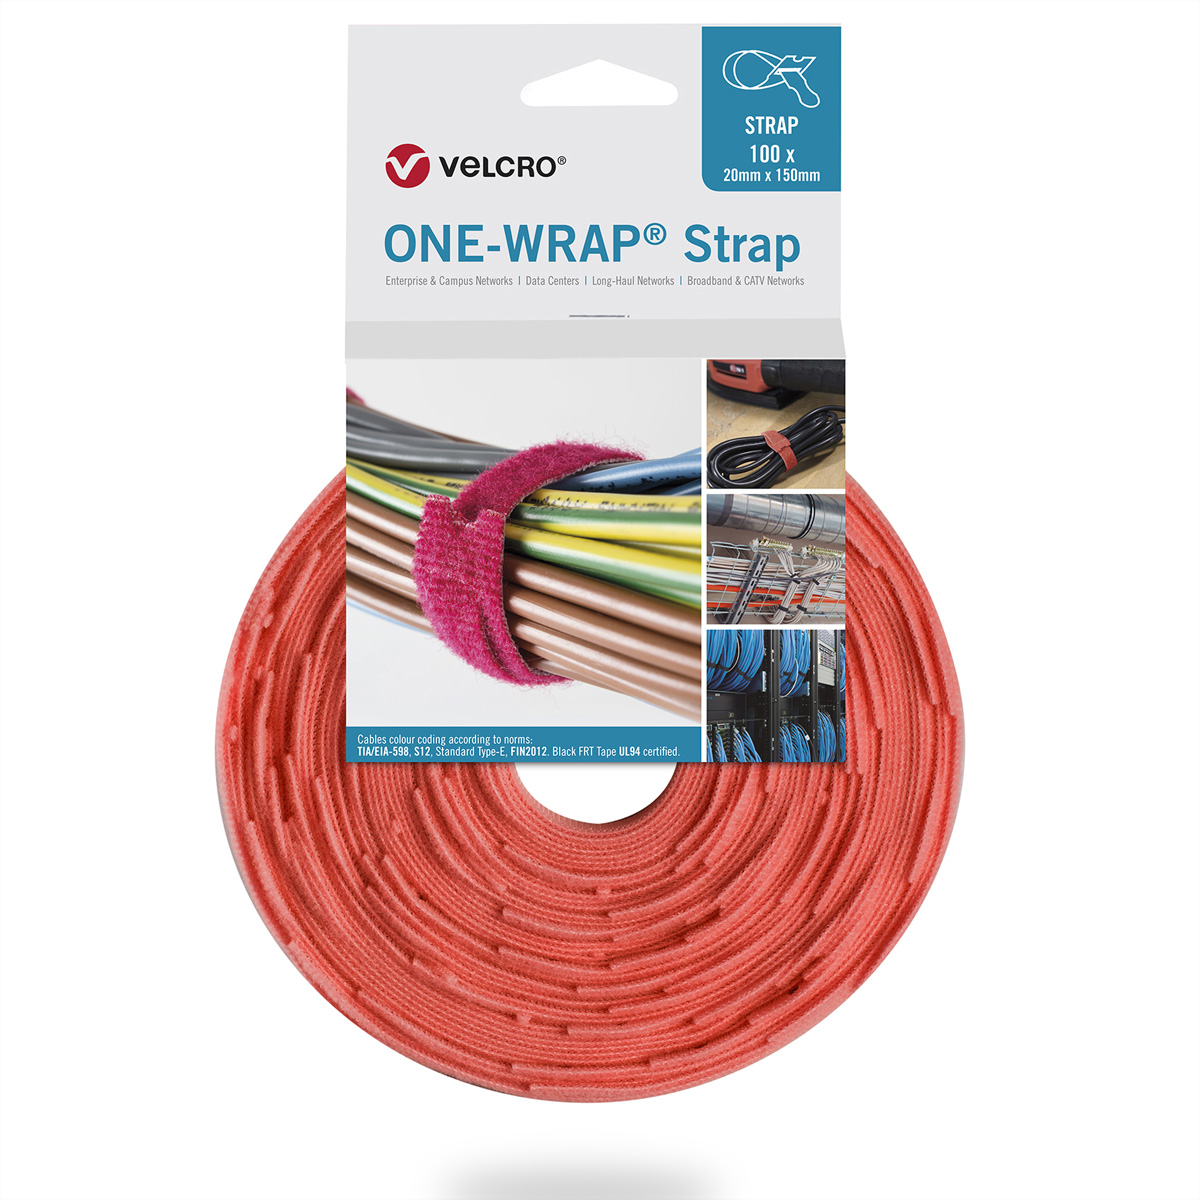 VELCRO® One Wrap® Strap 25mm x 300mm, 100 Stück, orange